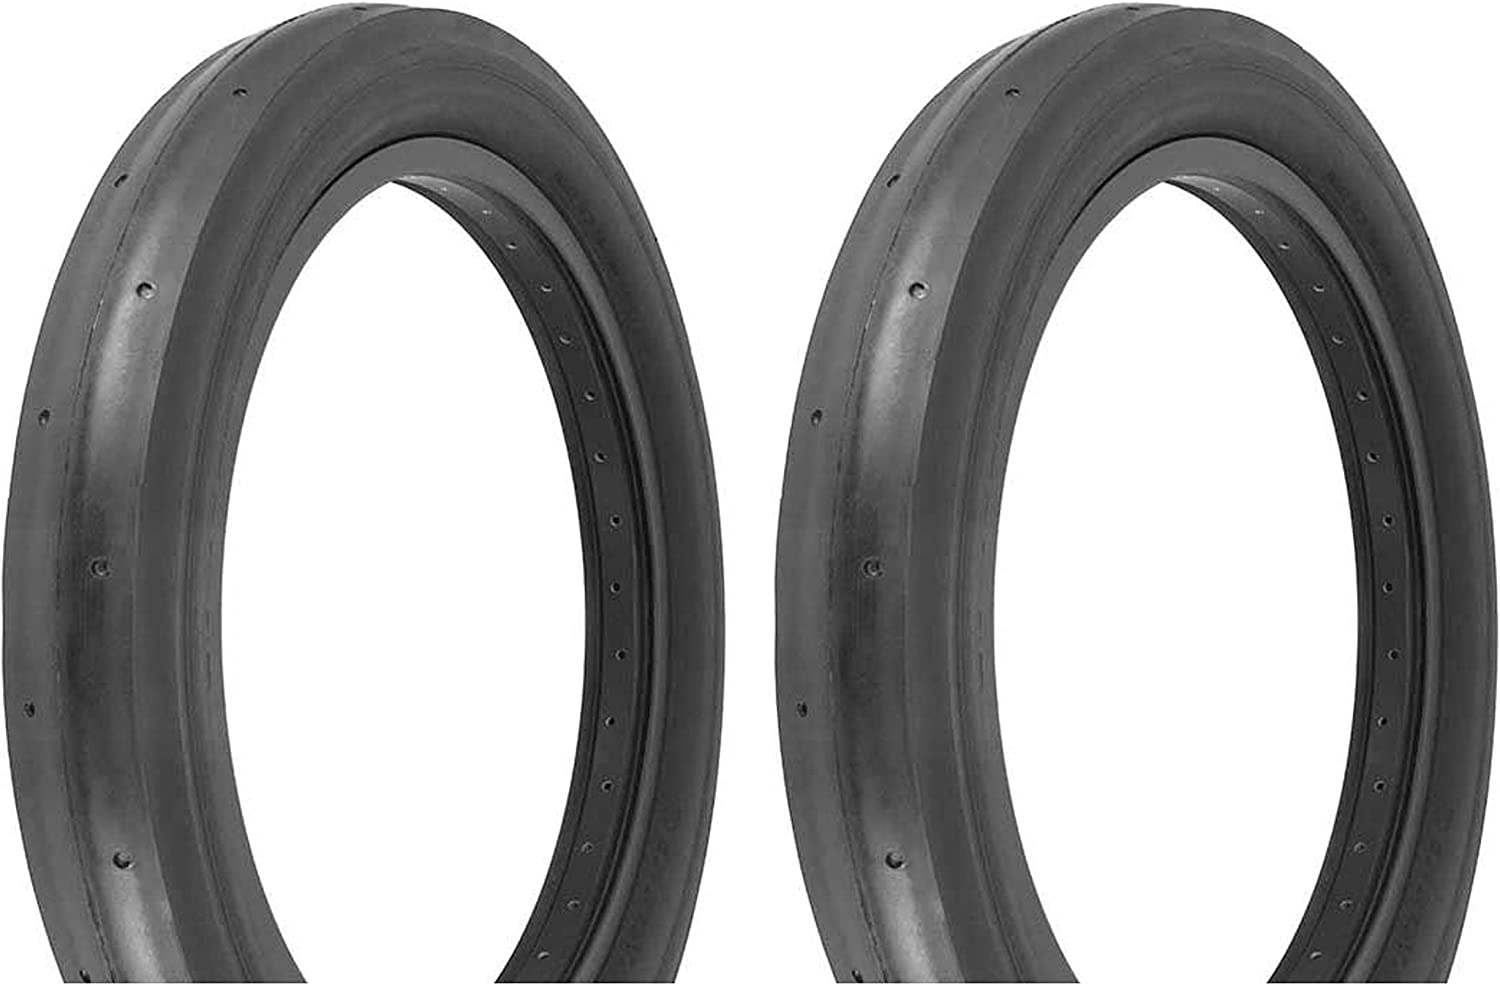 Two Bike Mesa Mall tire Duro 20 x Wall Directly managed store Bicy Side Black IA-2098. 3.00